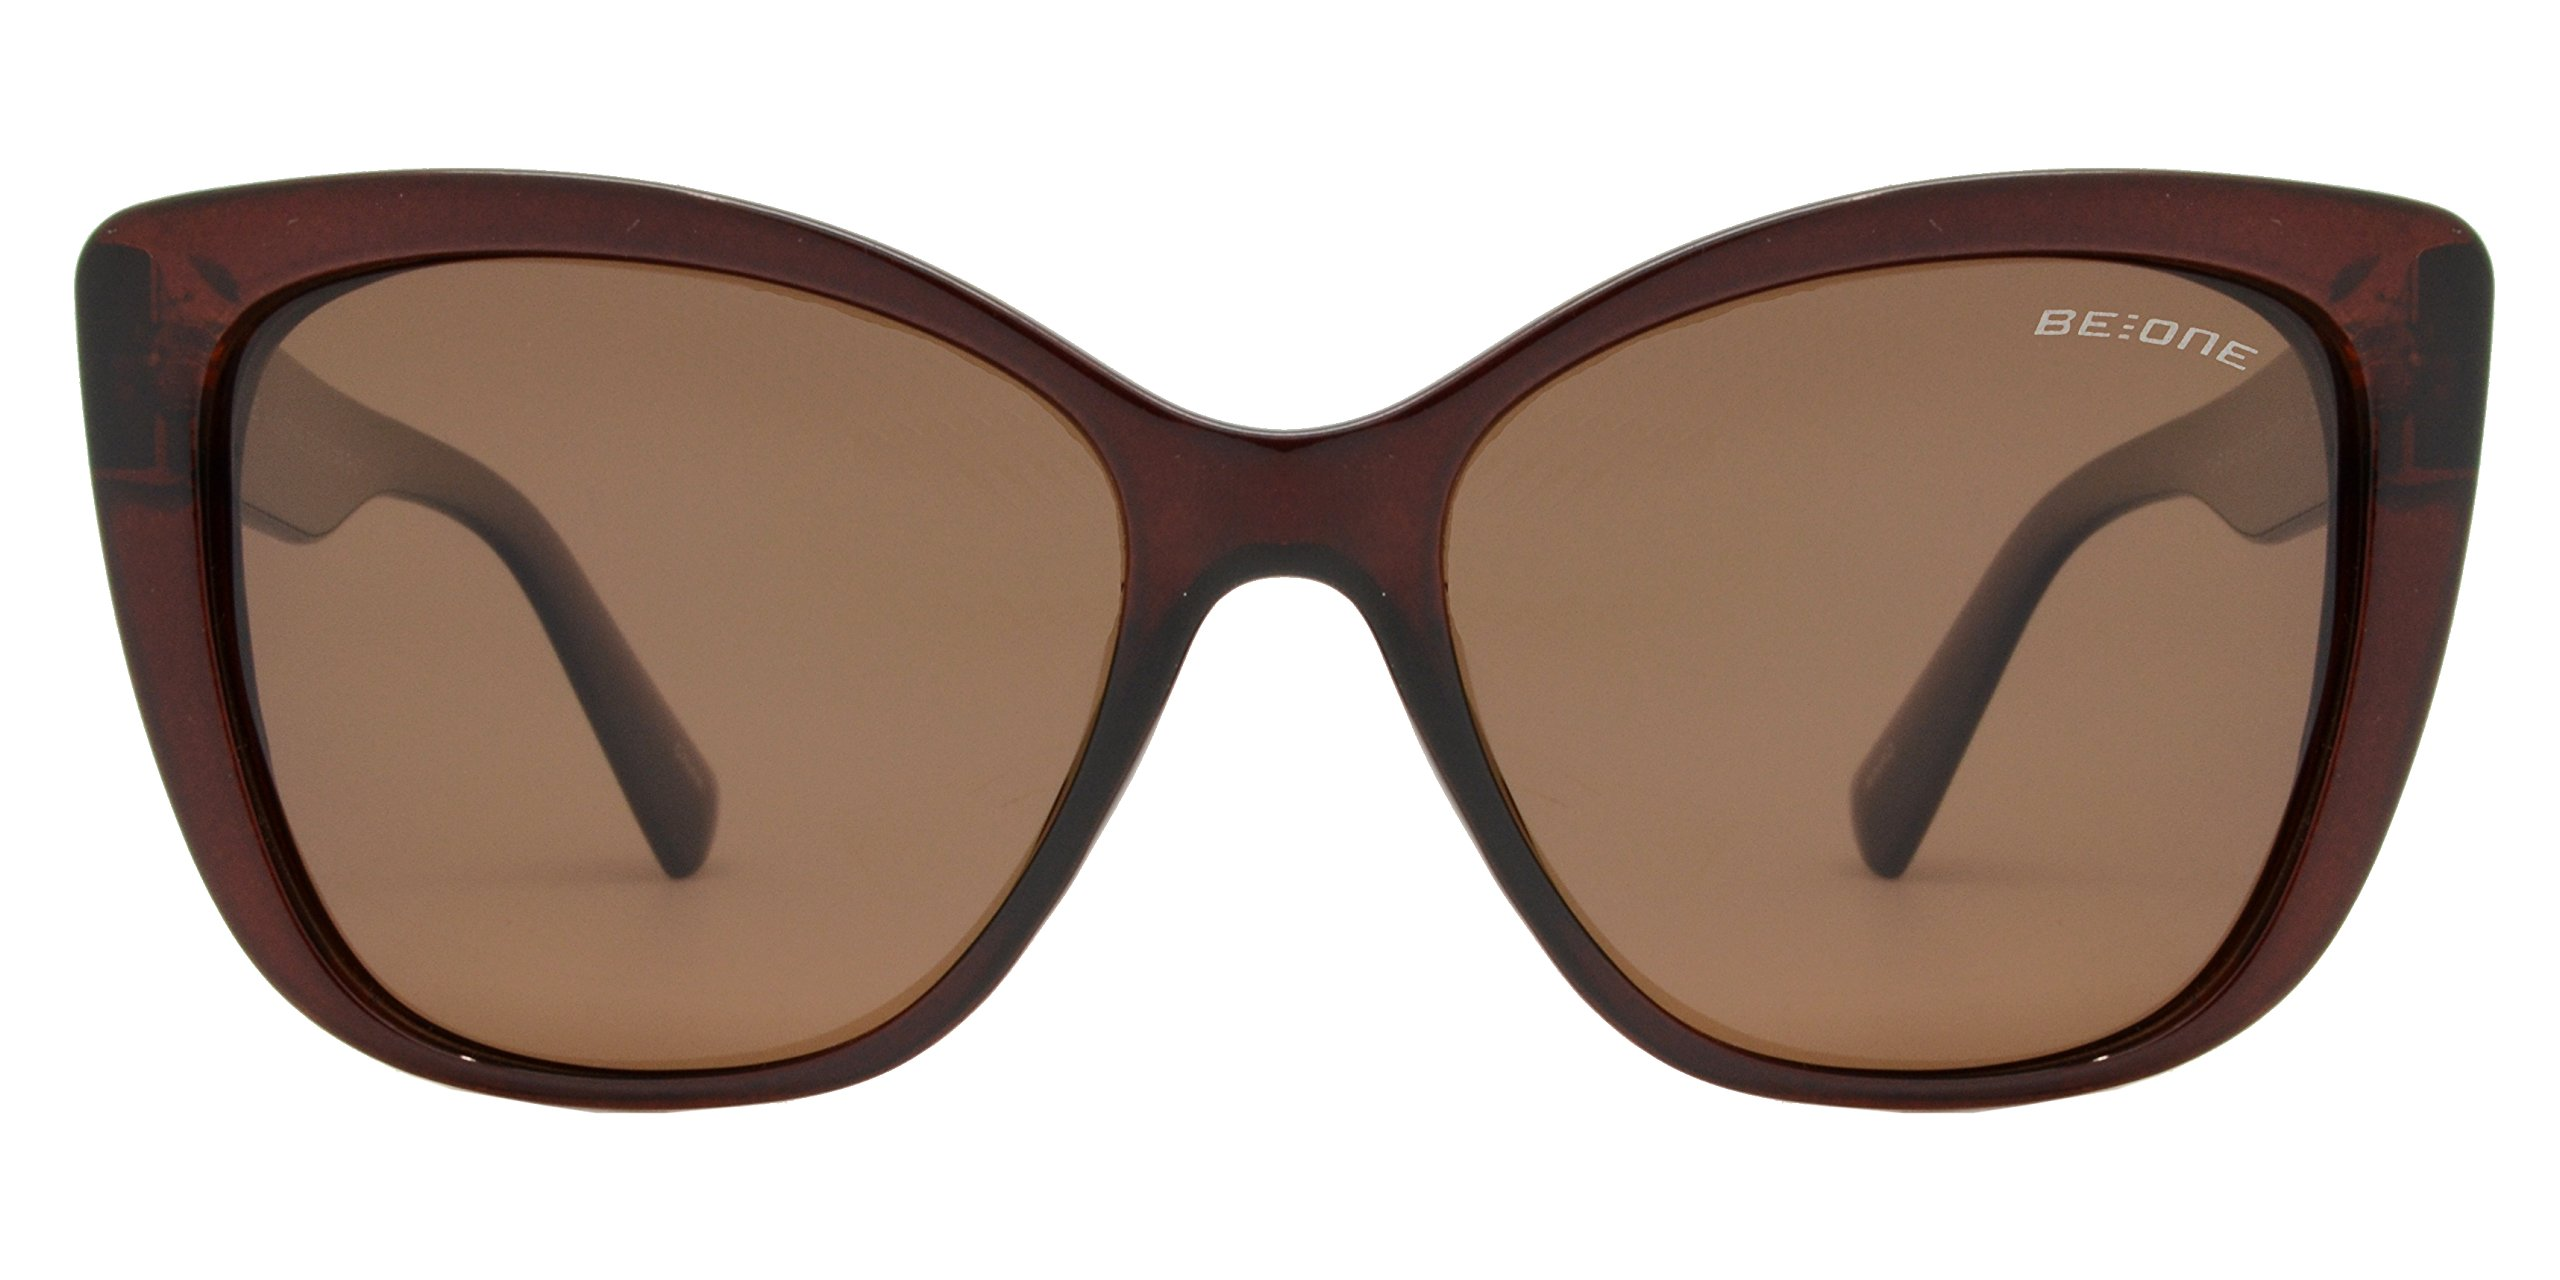 Be One Women Cat Eye Oversize Design Sunglasses- Polarized UV400 Rimmed Classic Retro (Brown, Brown)